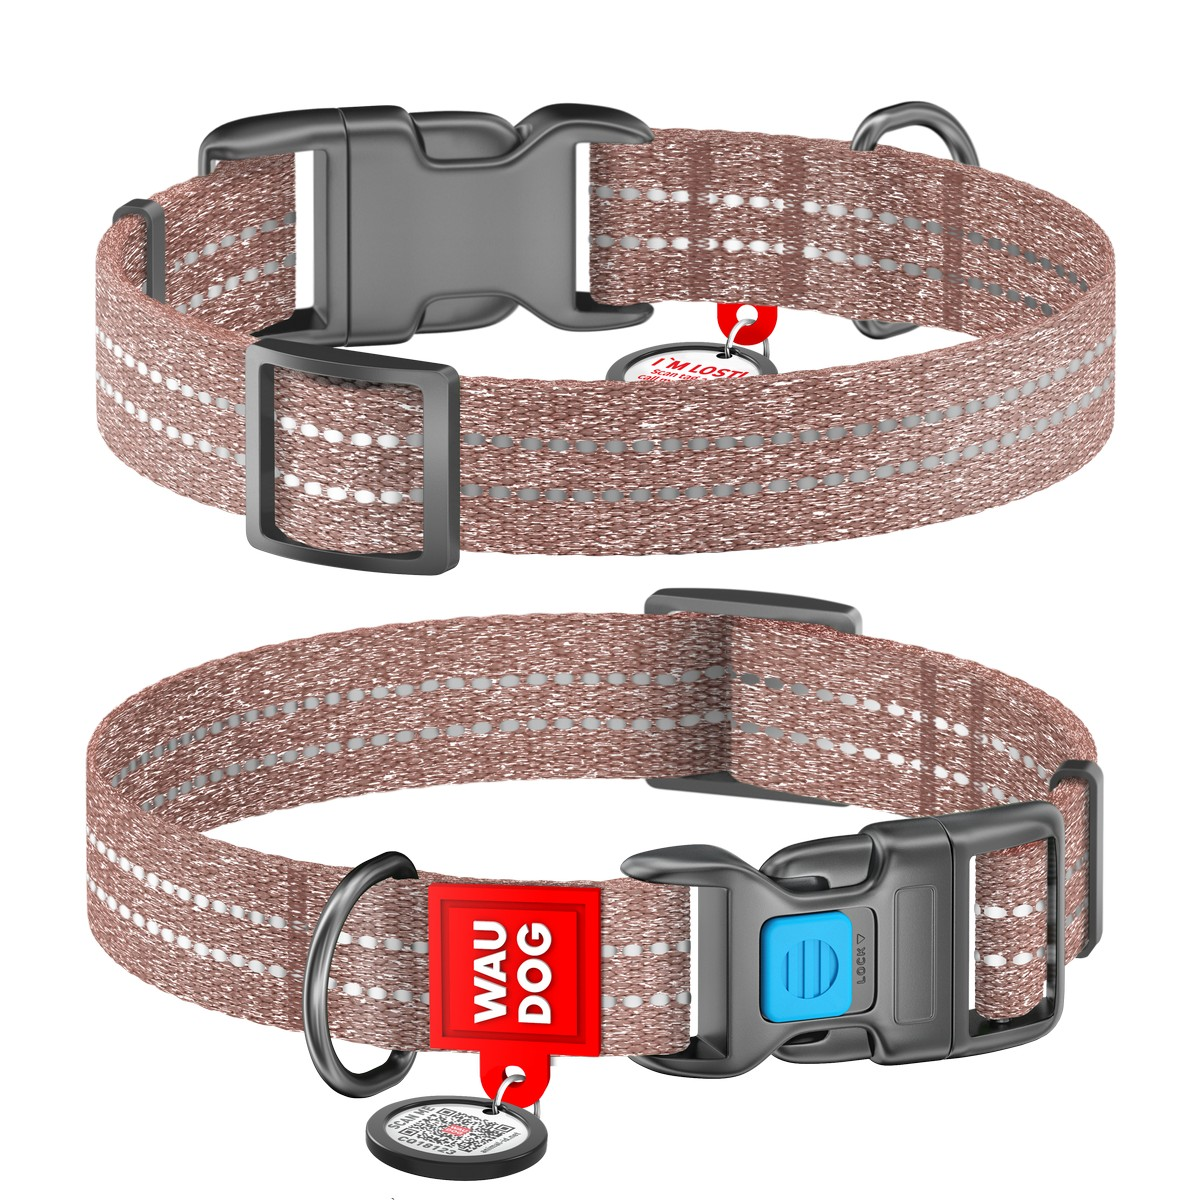 WAUDOG Re-cotton collar with QR passport, from recycled cotton, plastic buckle, brown